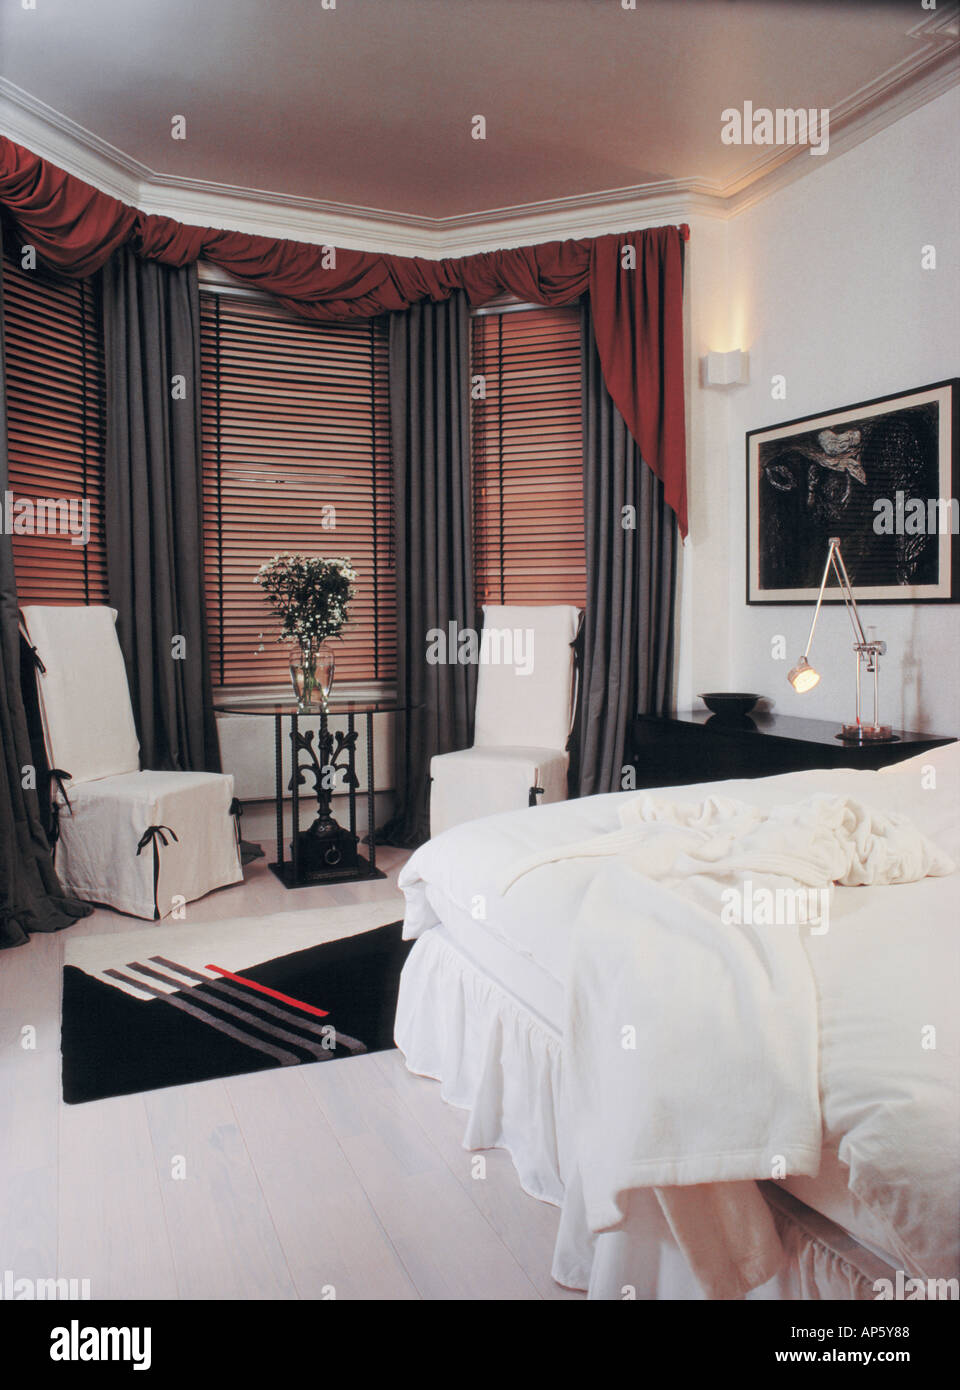 black wooden blinds. White Loosecovers On Chairs Beside Bay Window With Wooden Blinds And Black Curtains In Bedroom Carpet Bedlinen